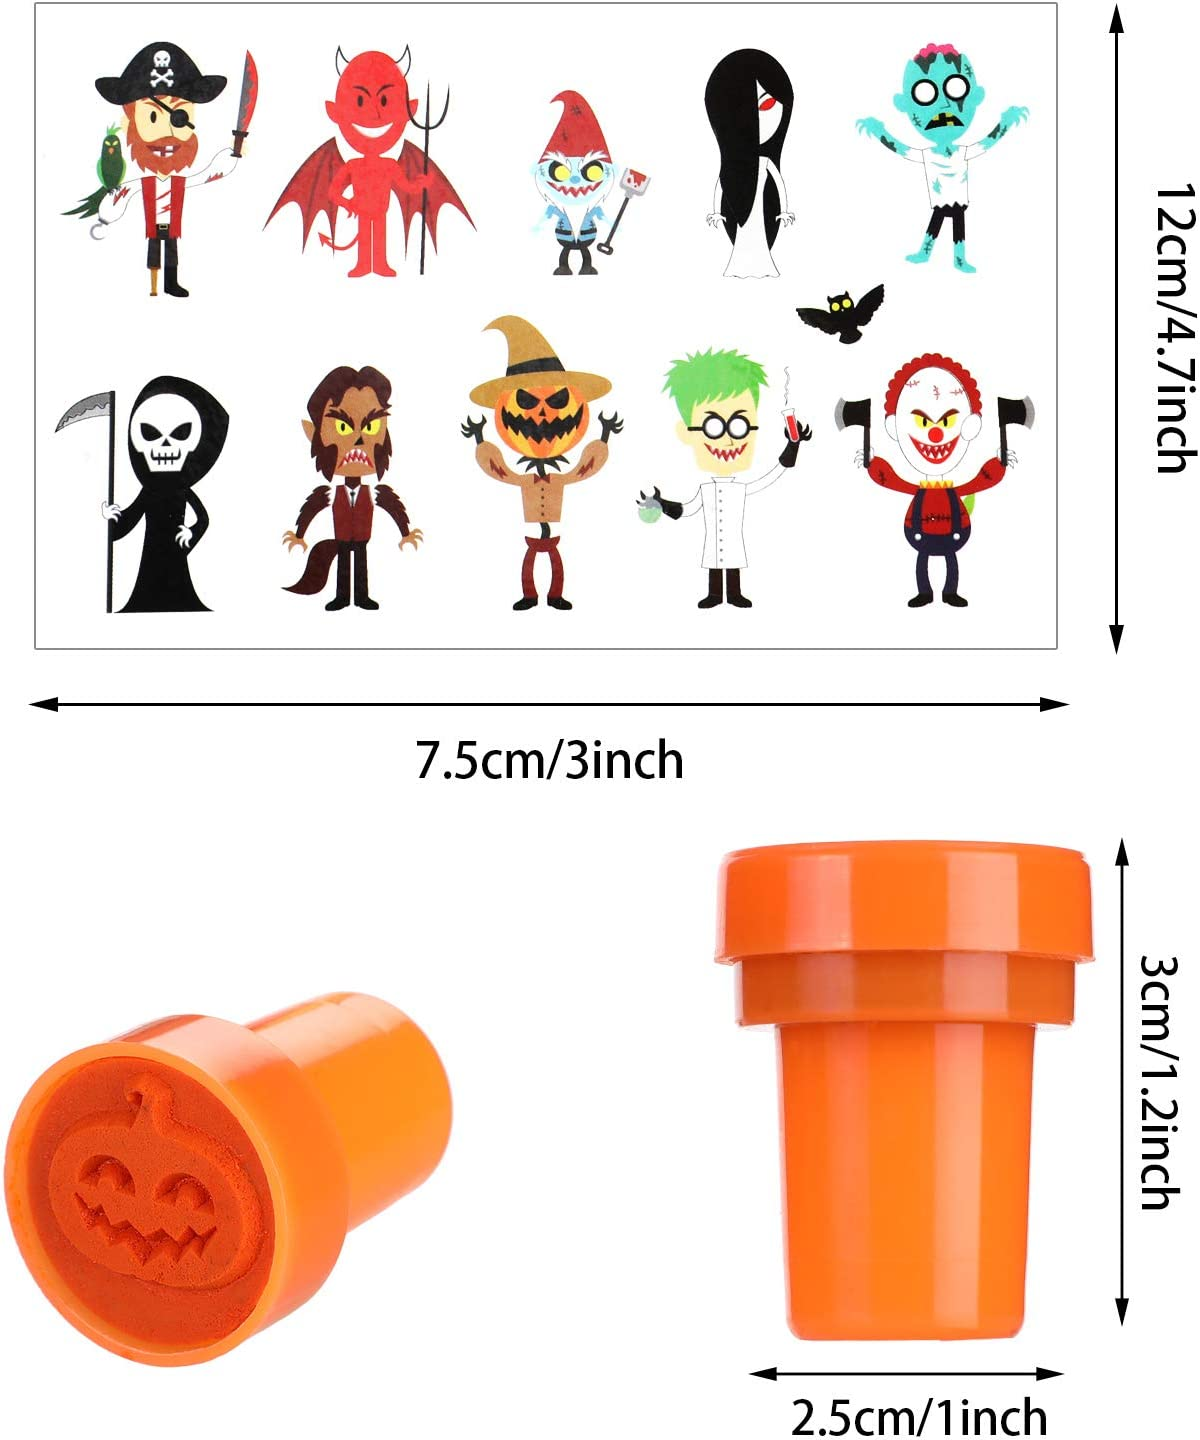 50 Pieces Halloween Stampers with 12 Sheets Halloween Stickers for Kids Halloween Party Supplies Game Prizes Halloween Goodies Bags Decoration Supplies Outus 200 Pieces Halloween Party Accessories